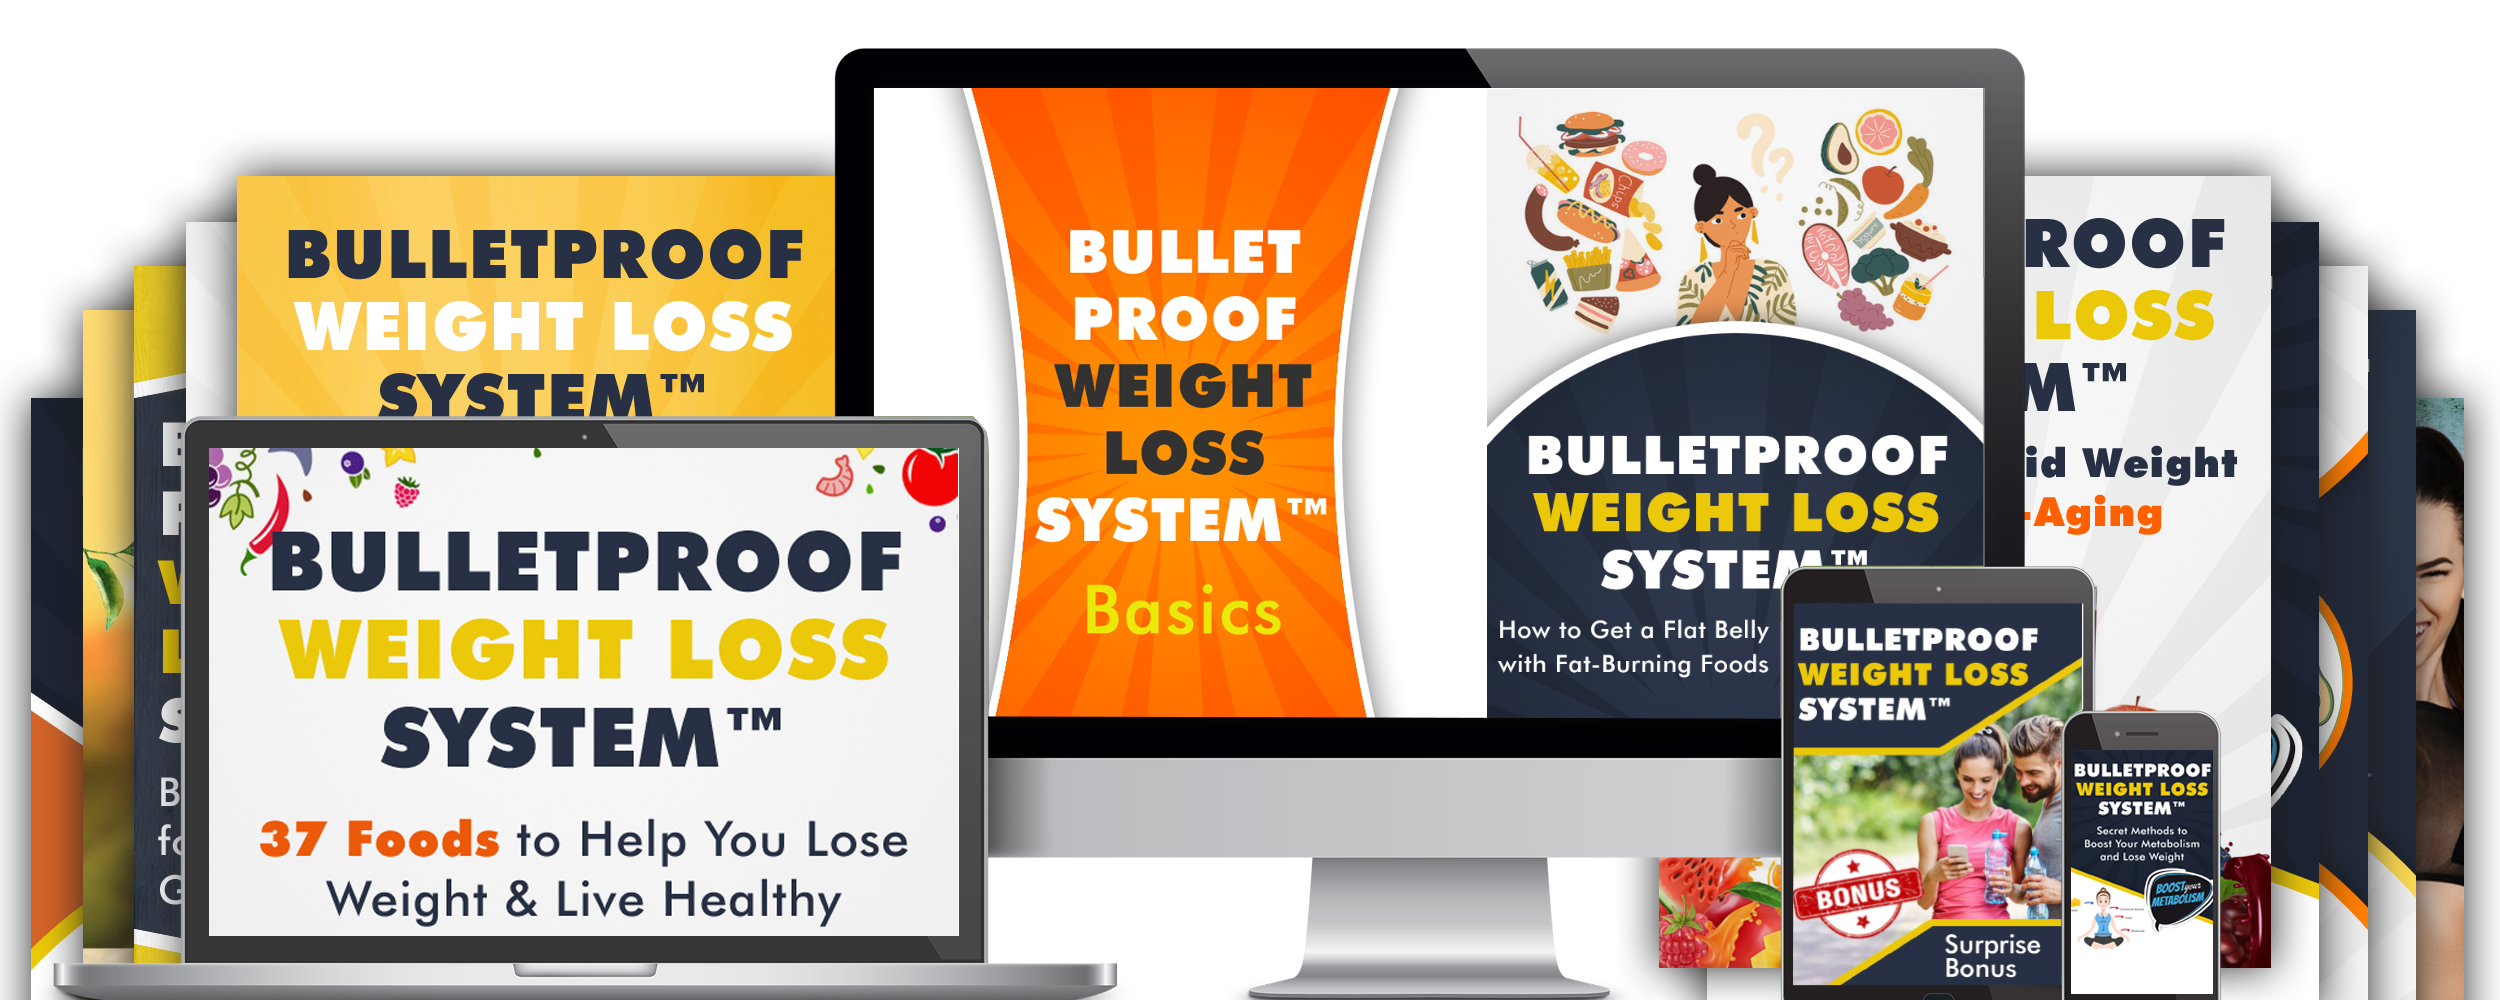 Bulletproof Weight Loss System™